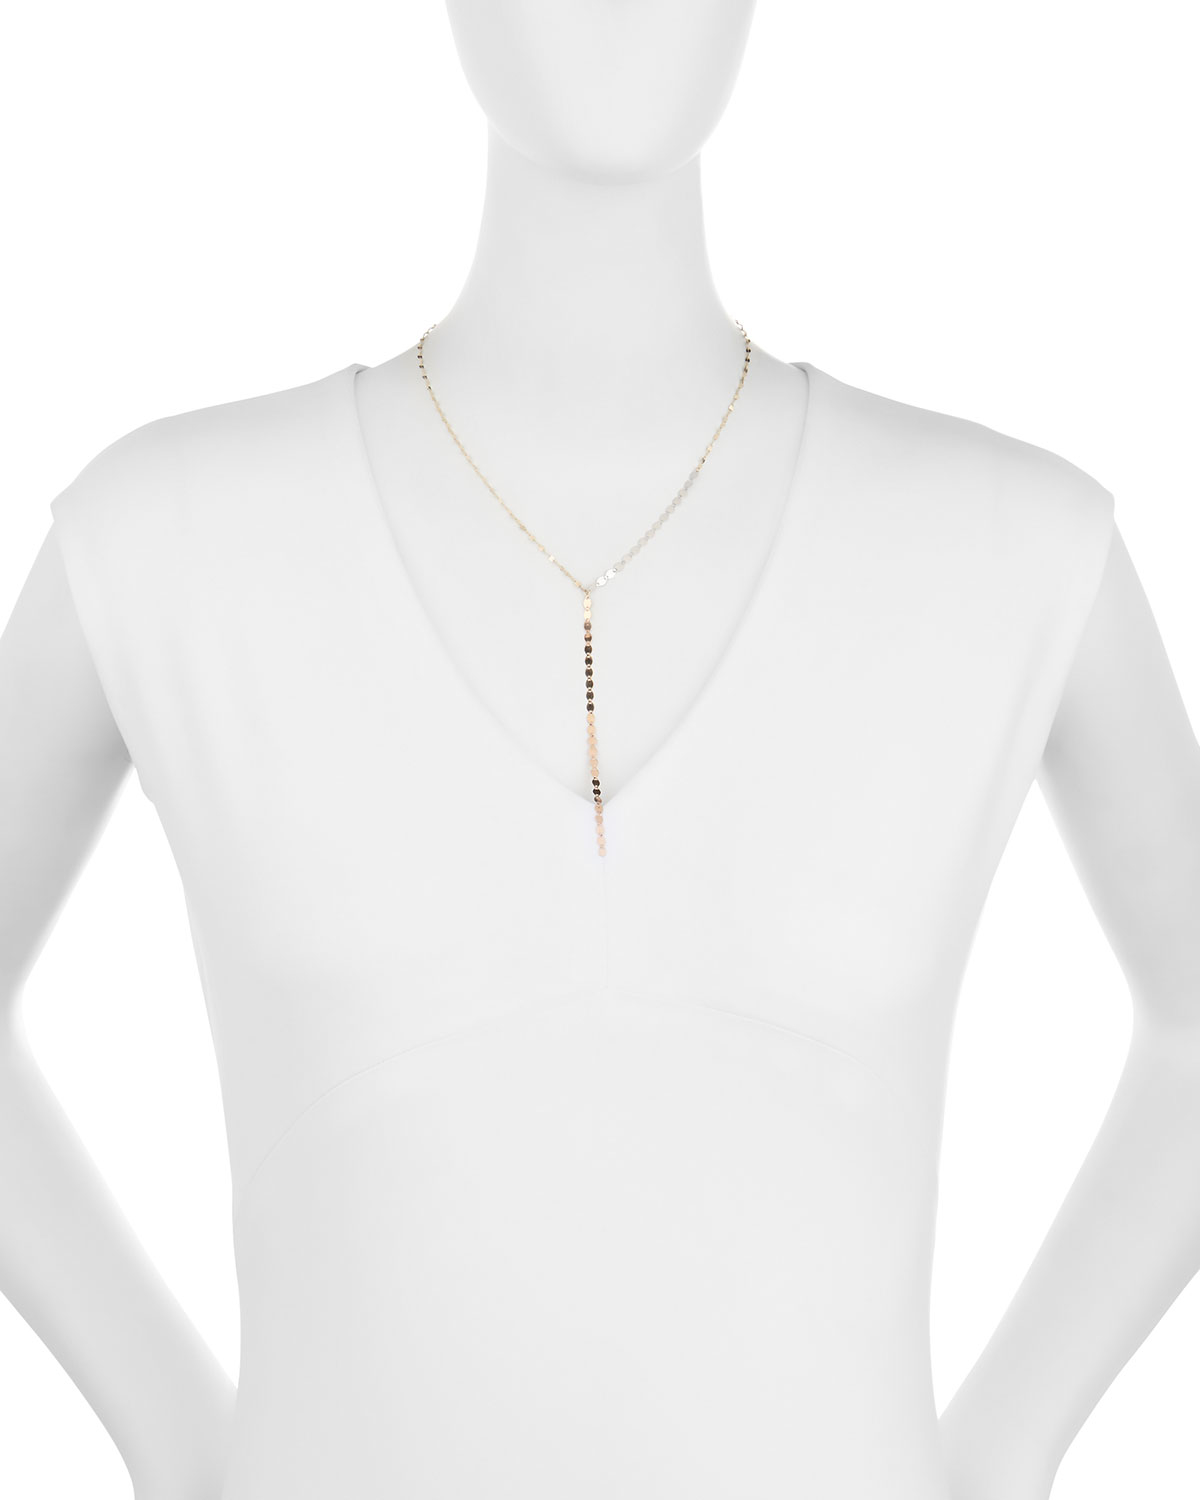 Lana Jewelry 14k Nude Lariat Necklace n7EH9